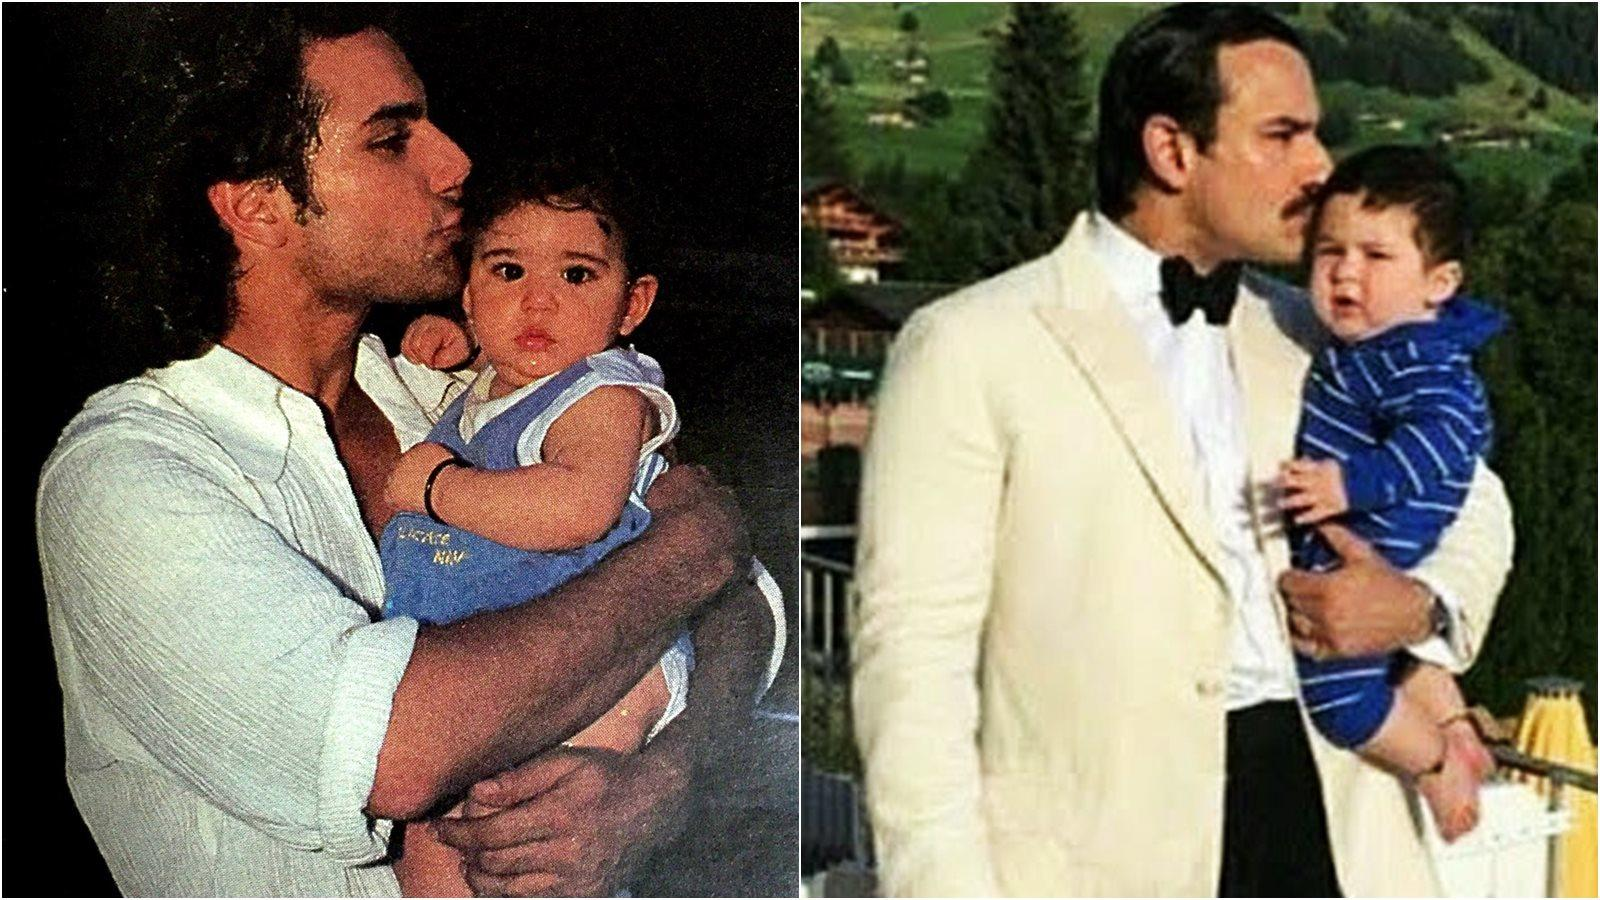 sara-ali-khan-bears-a-striking-resemblance-to-taimur-ali-khan-in-this-adorable-throwback-photo-with-saif